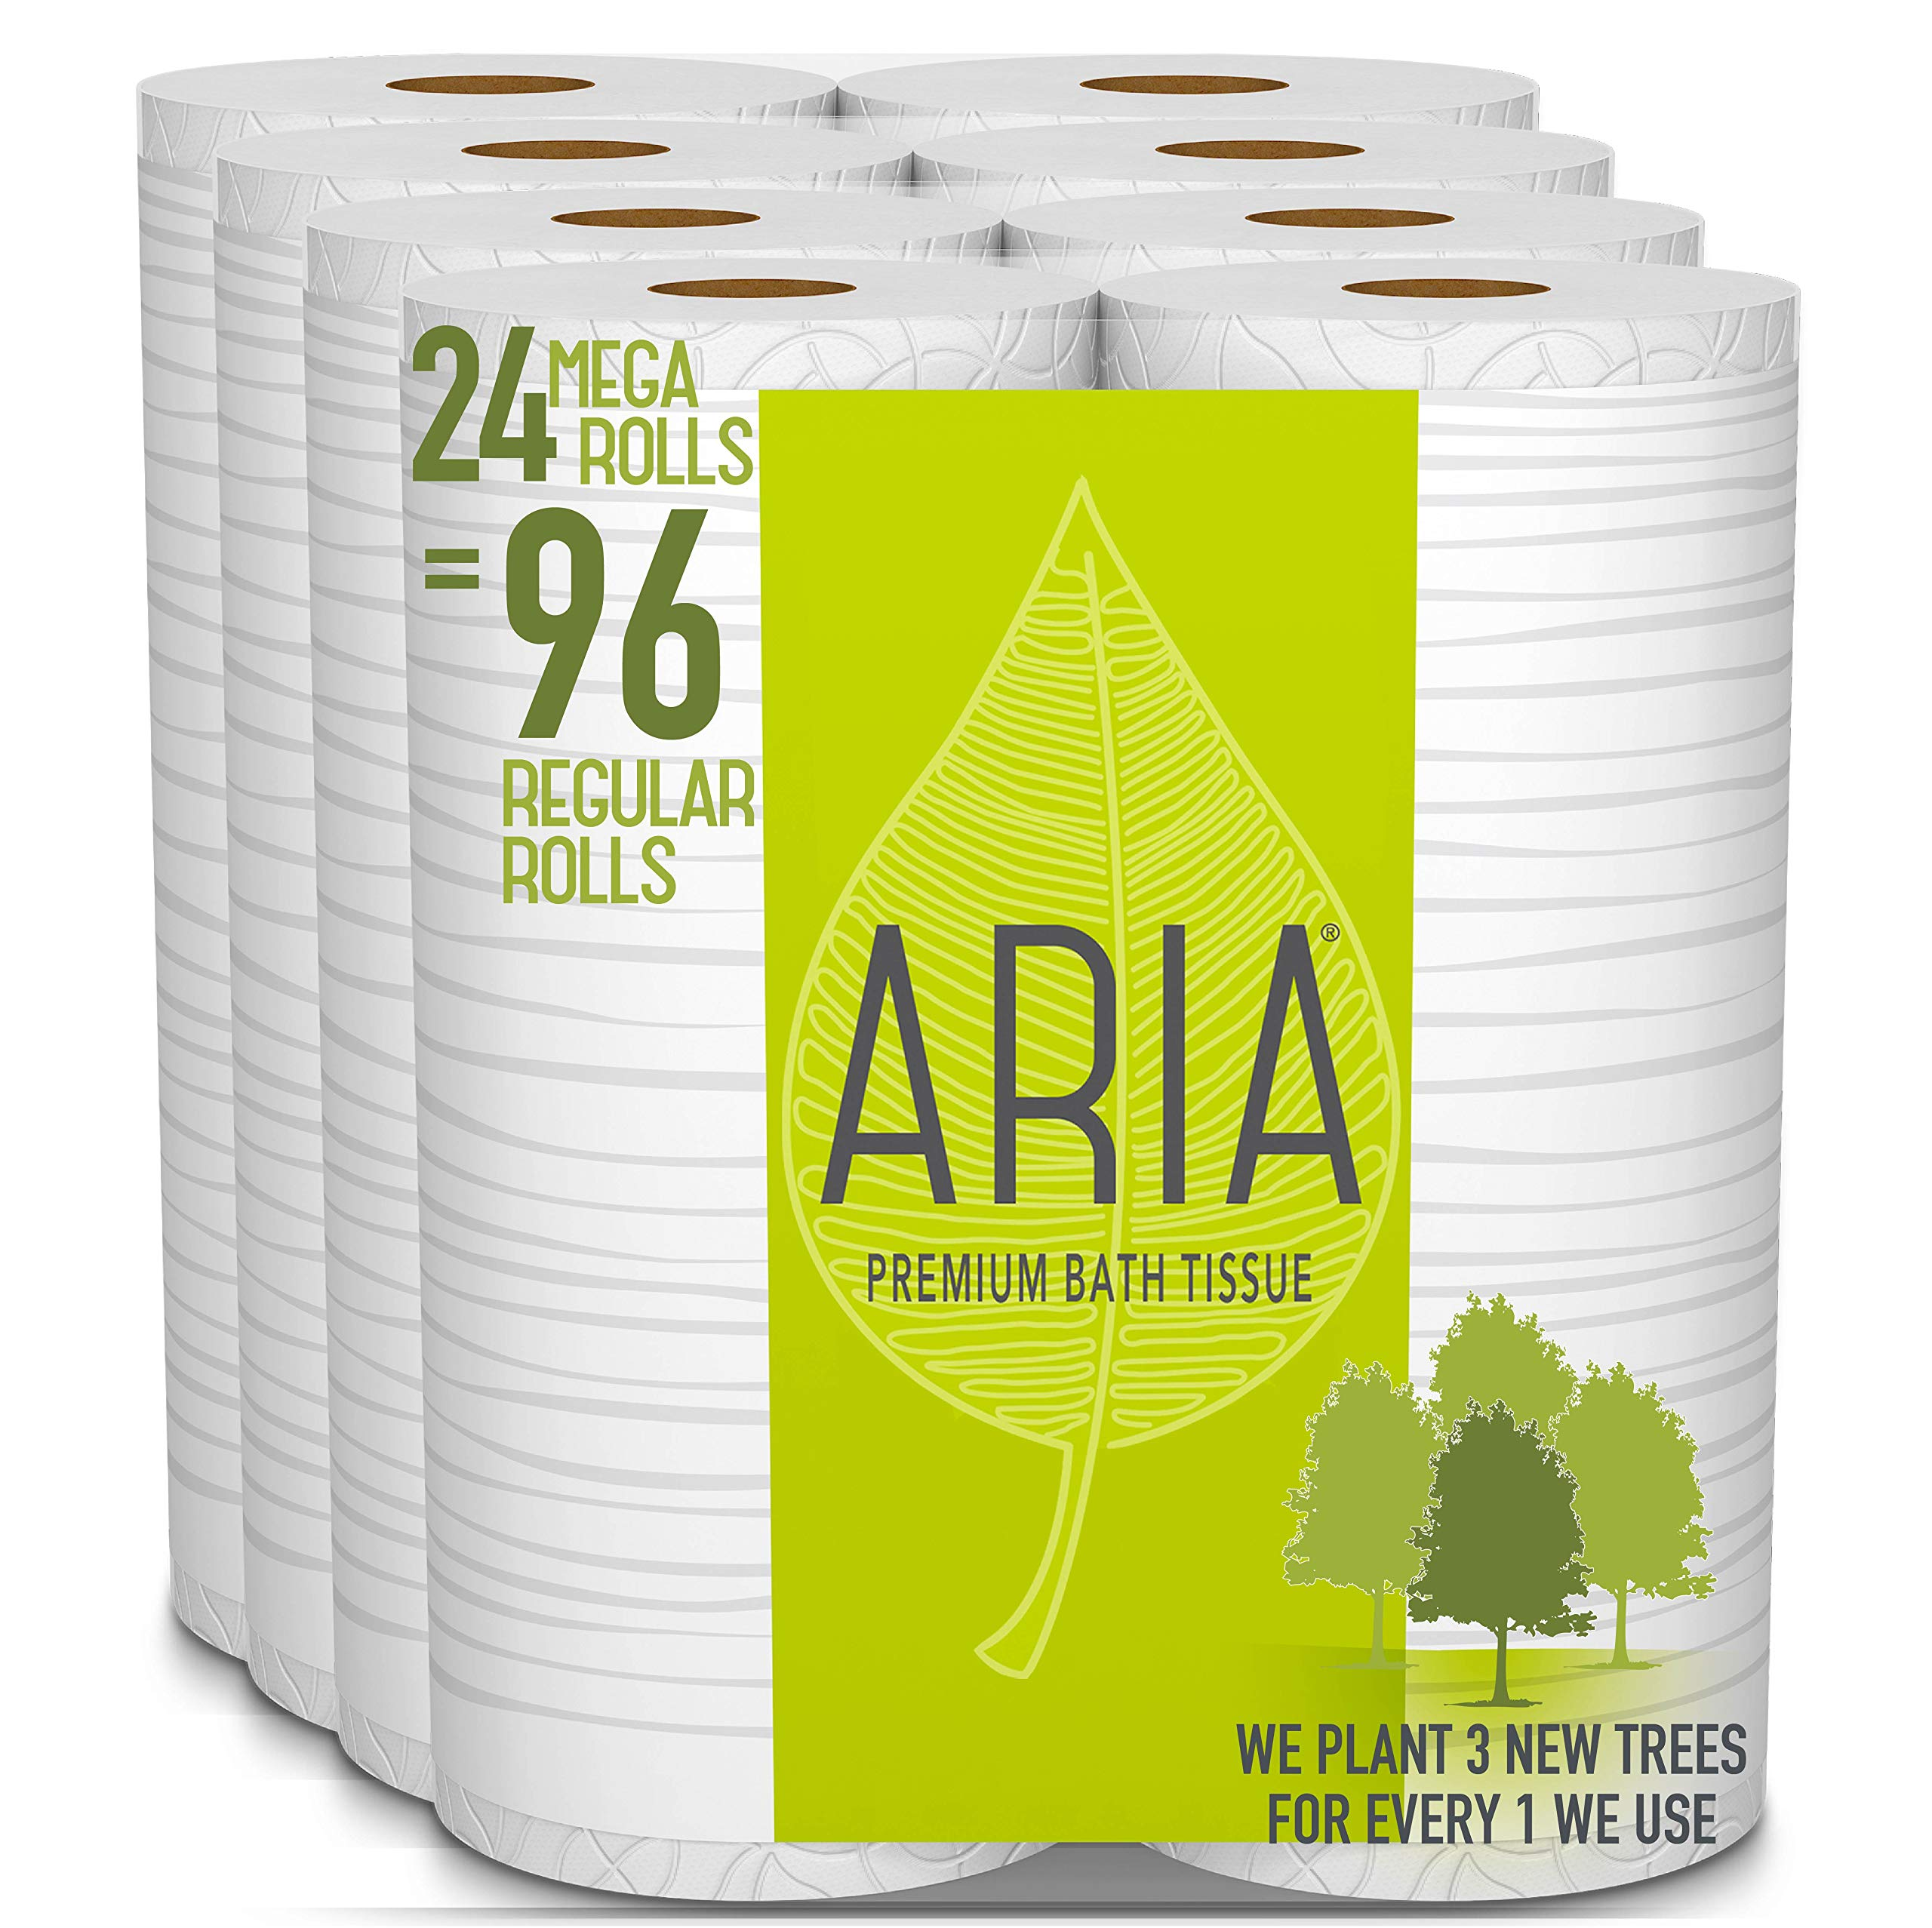 Aria Premium, Earth Friendly Toilet Paper, 24 Mega Rolls, 24 = 96 Regular Rolls, 4 Packs of 6 Rolls by ARIA